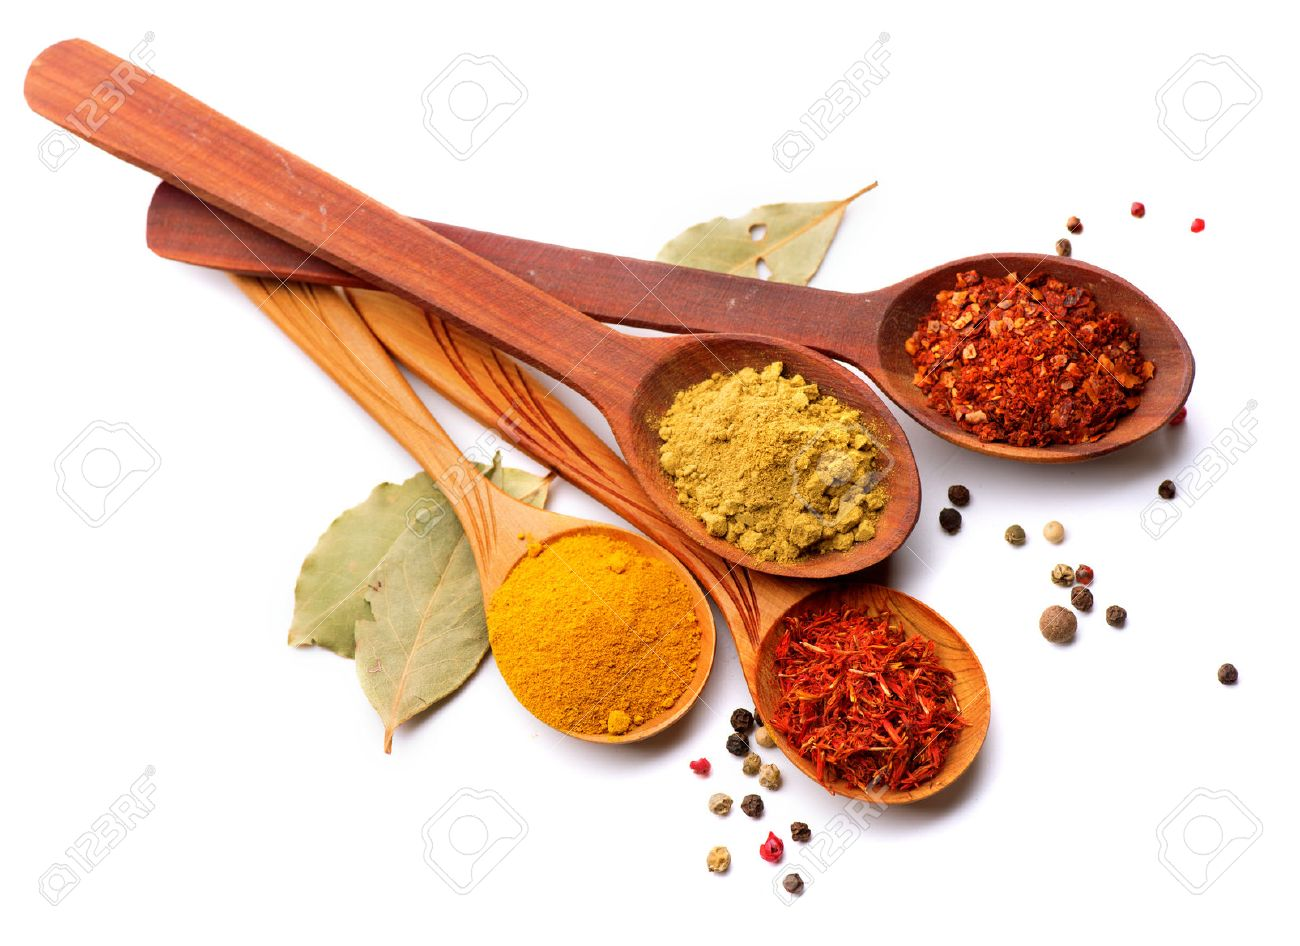 Spices and herbs Curry, saffron, turmeric, cinnamon over white - 26932367